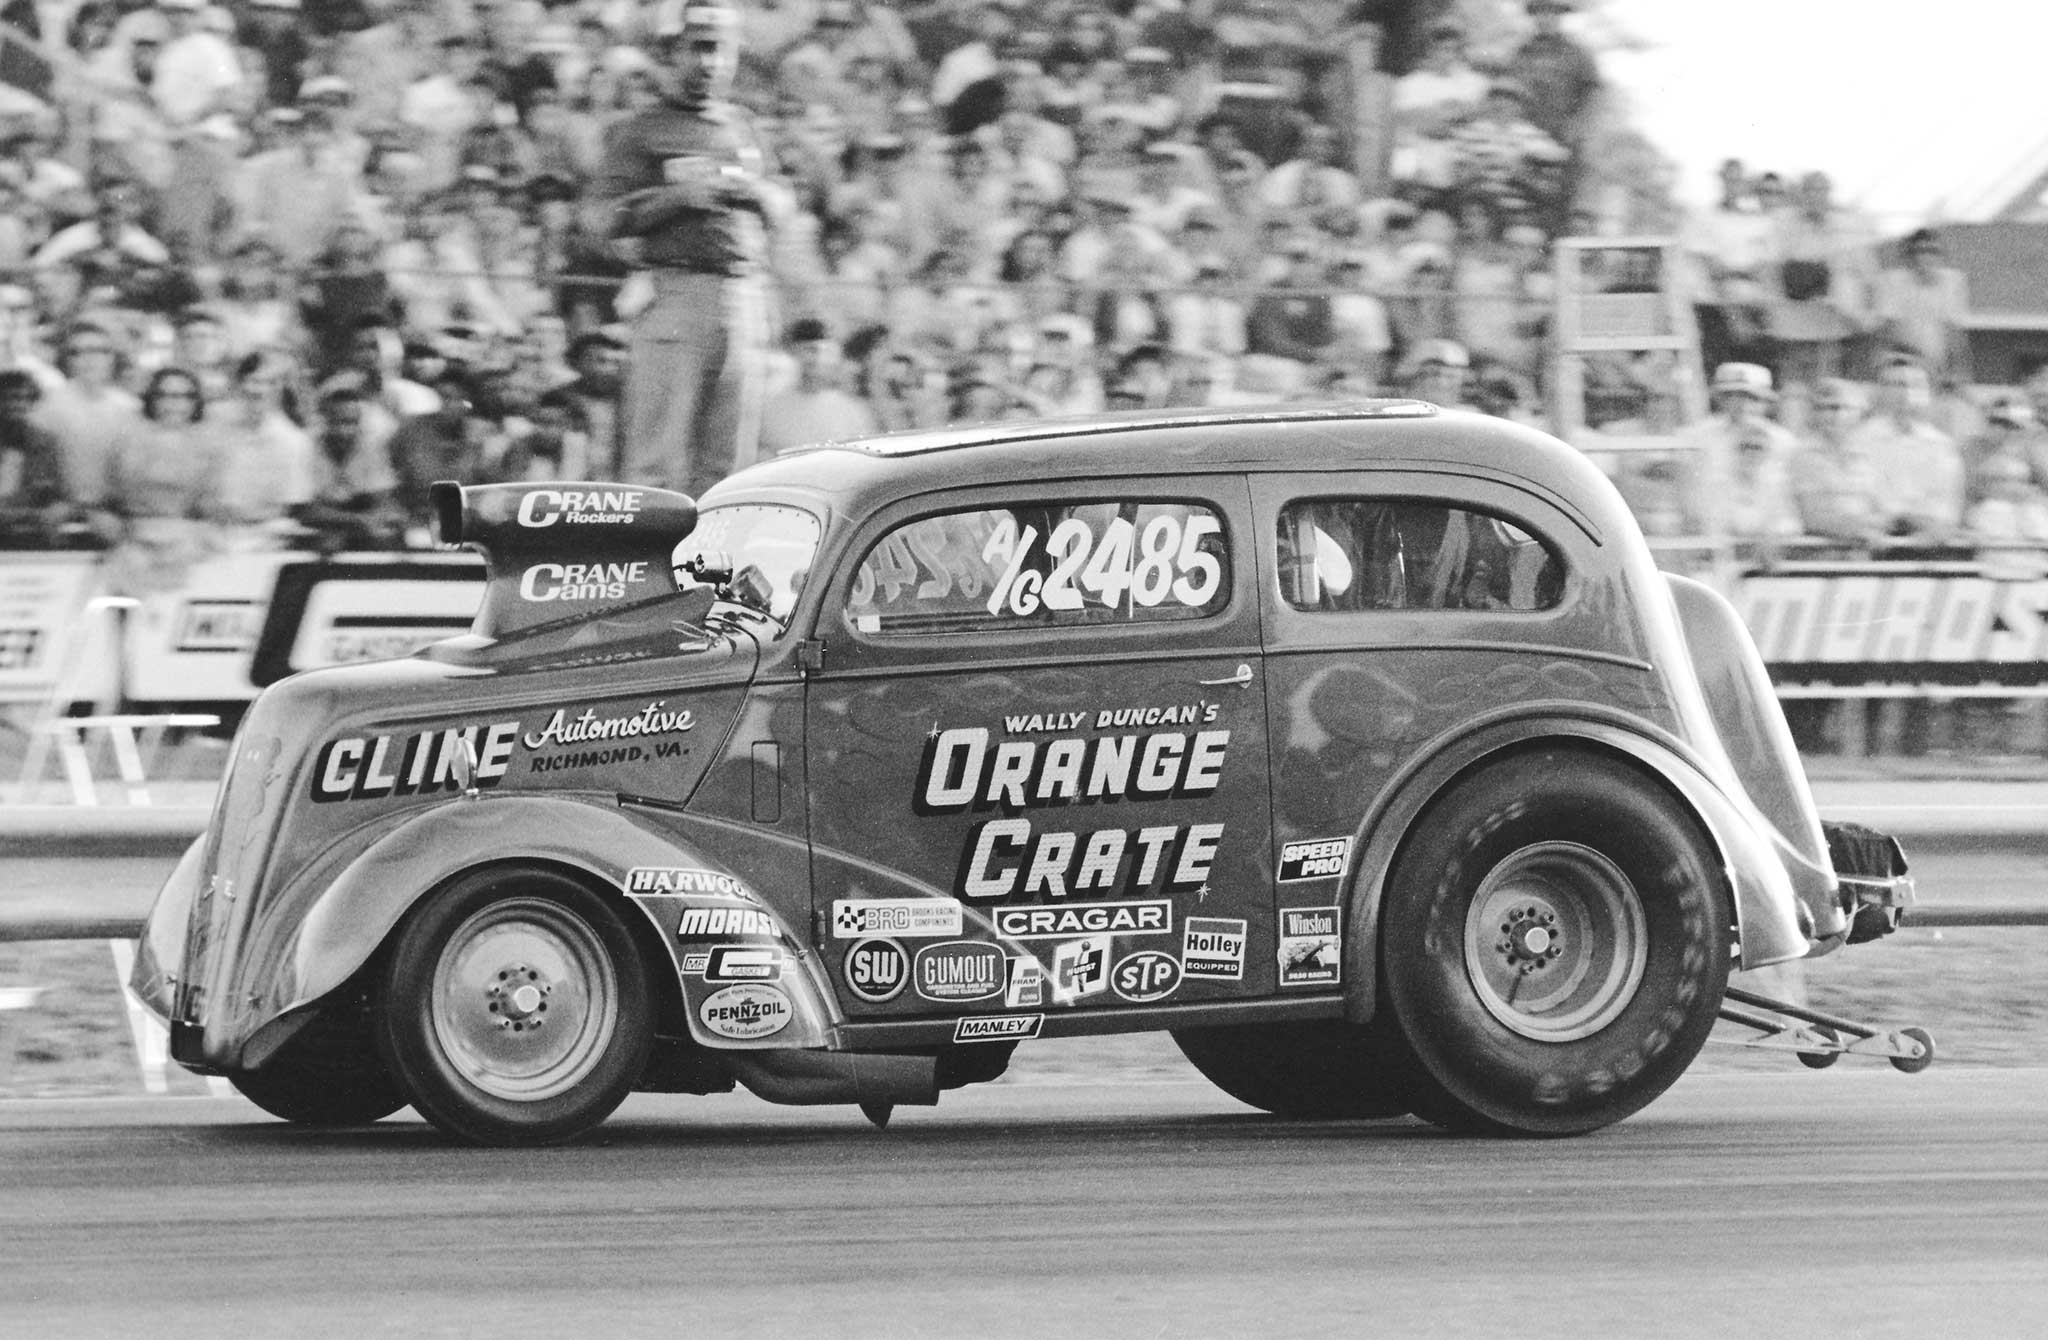 Virginian Wally Duncan's Orange Crate 1948 Anglia A/Gasser was an East Coast staple in Modified. The car sported a chopped-top, fiberglass front end, big-block Chevy, and a Formula 500 hoodscoop. It was a solid runner at divisional and national events.